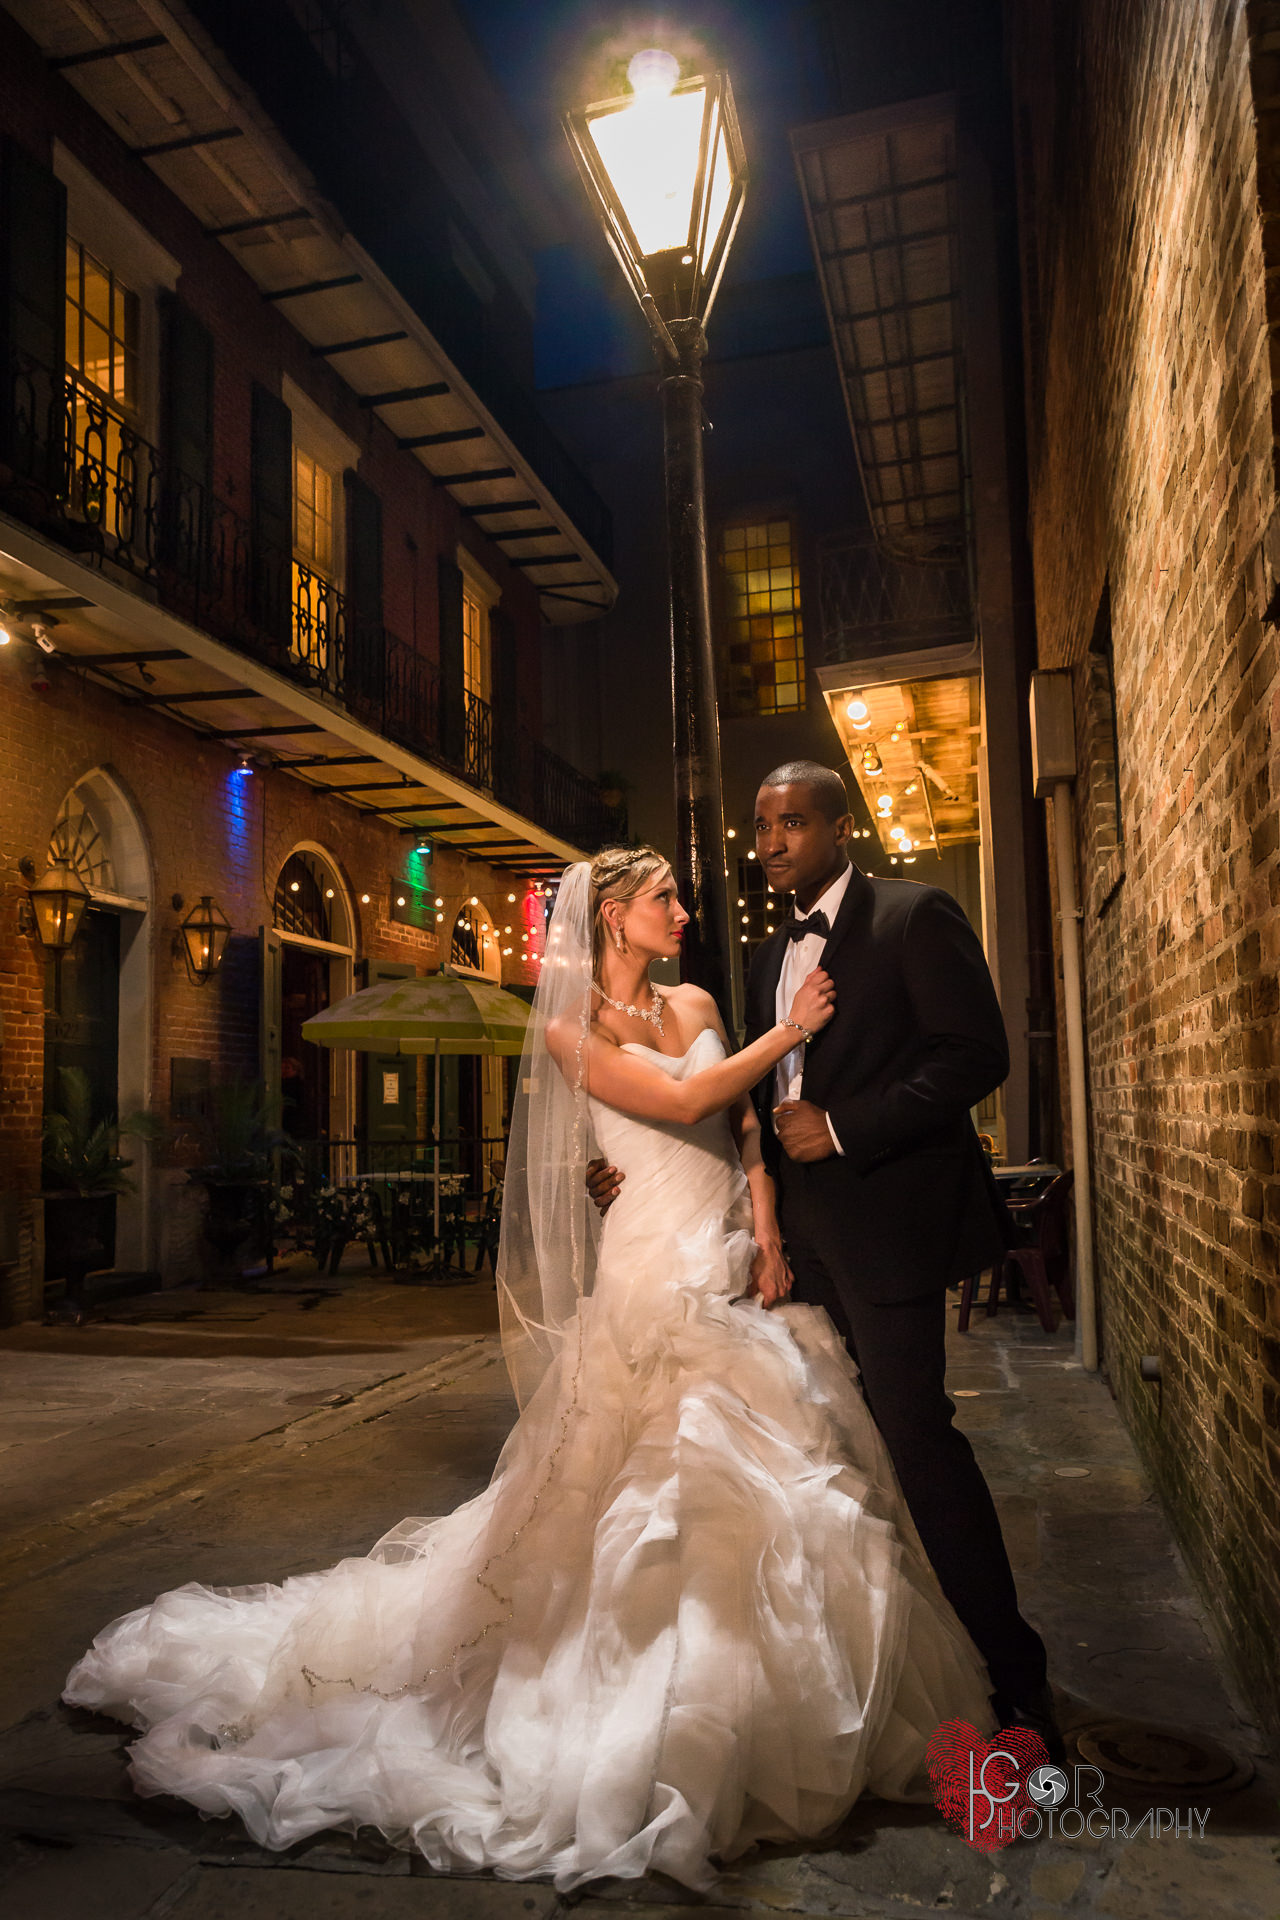 Romantic Wedding photography in Nola